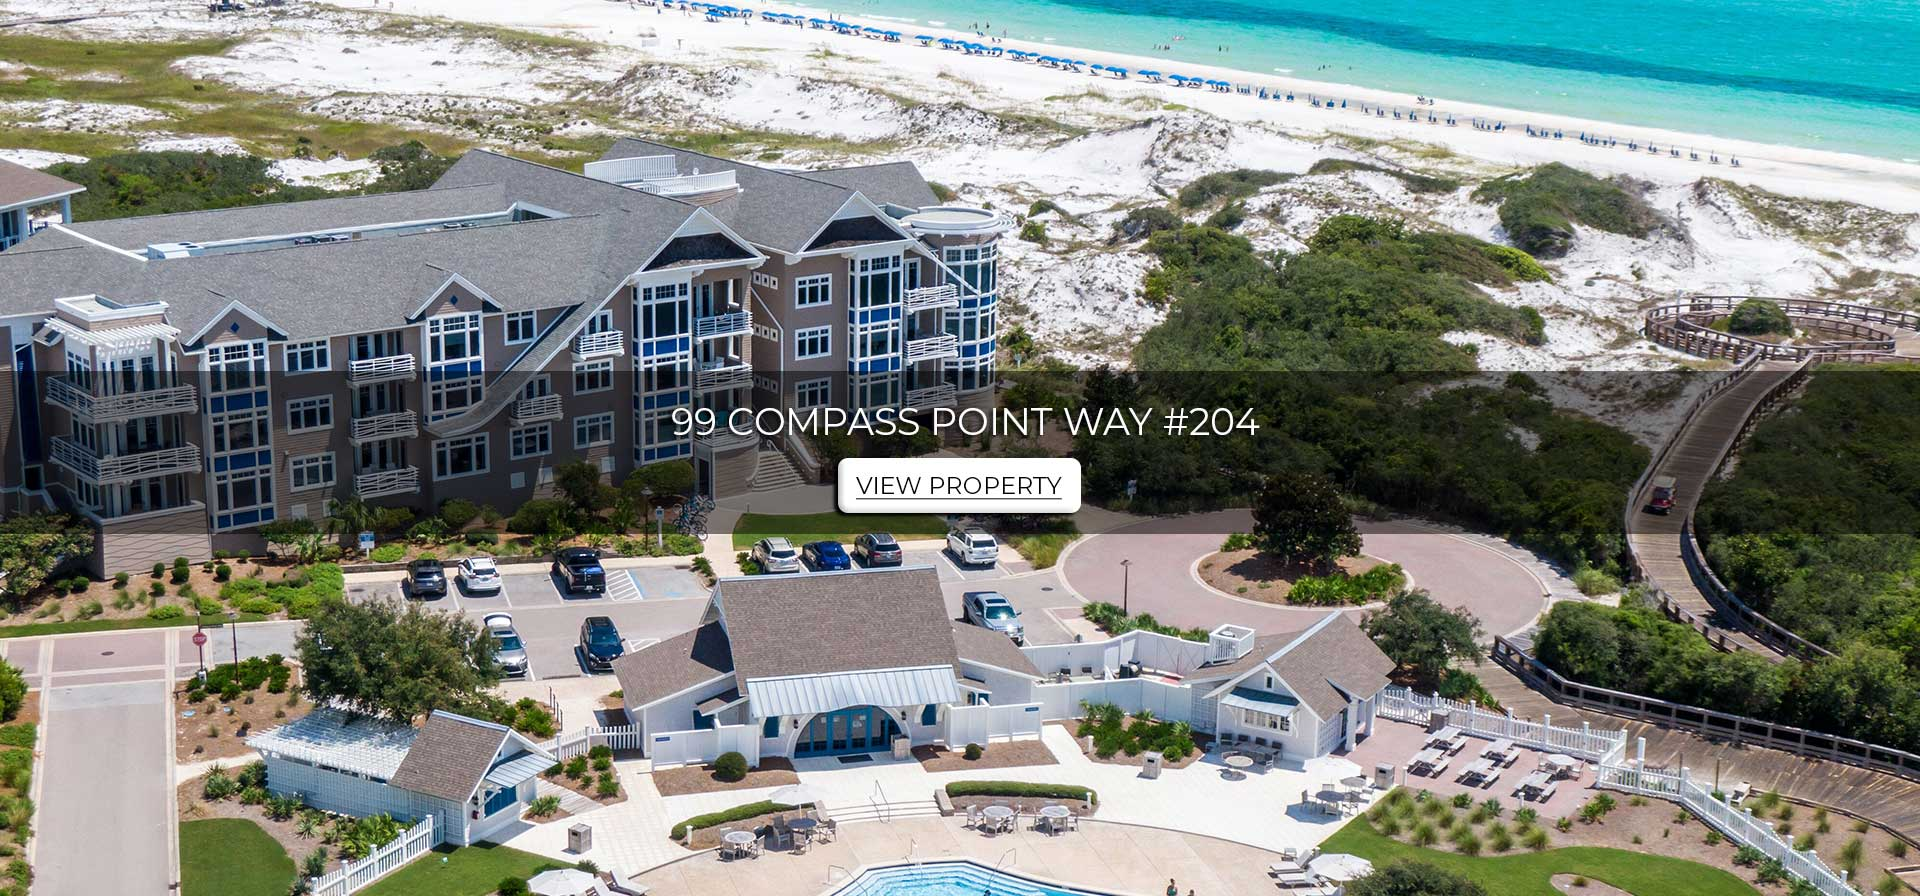 99 Compass Point Way #204